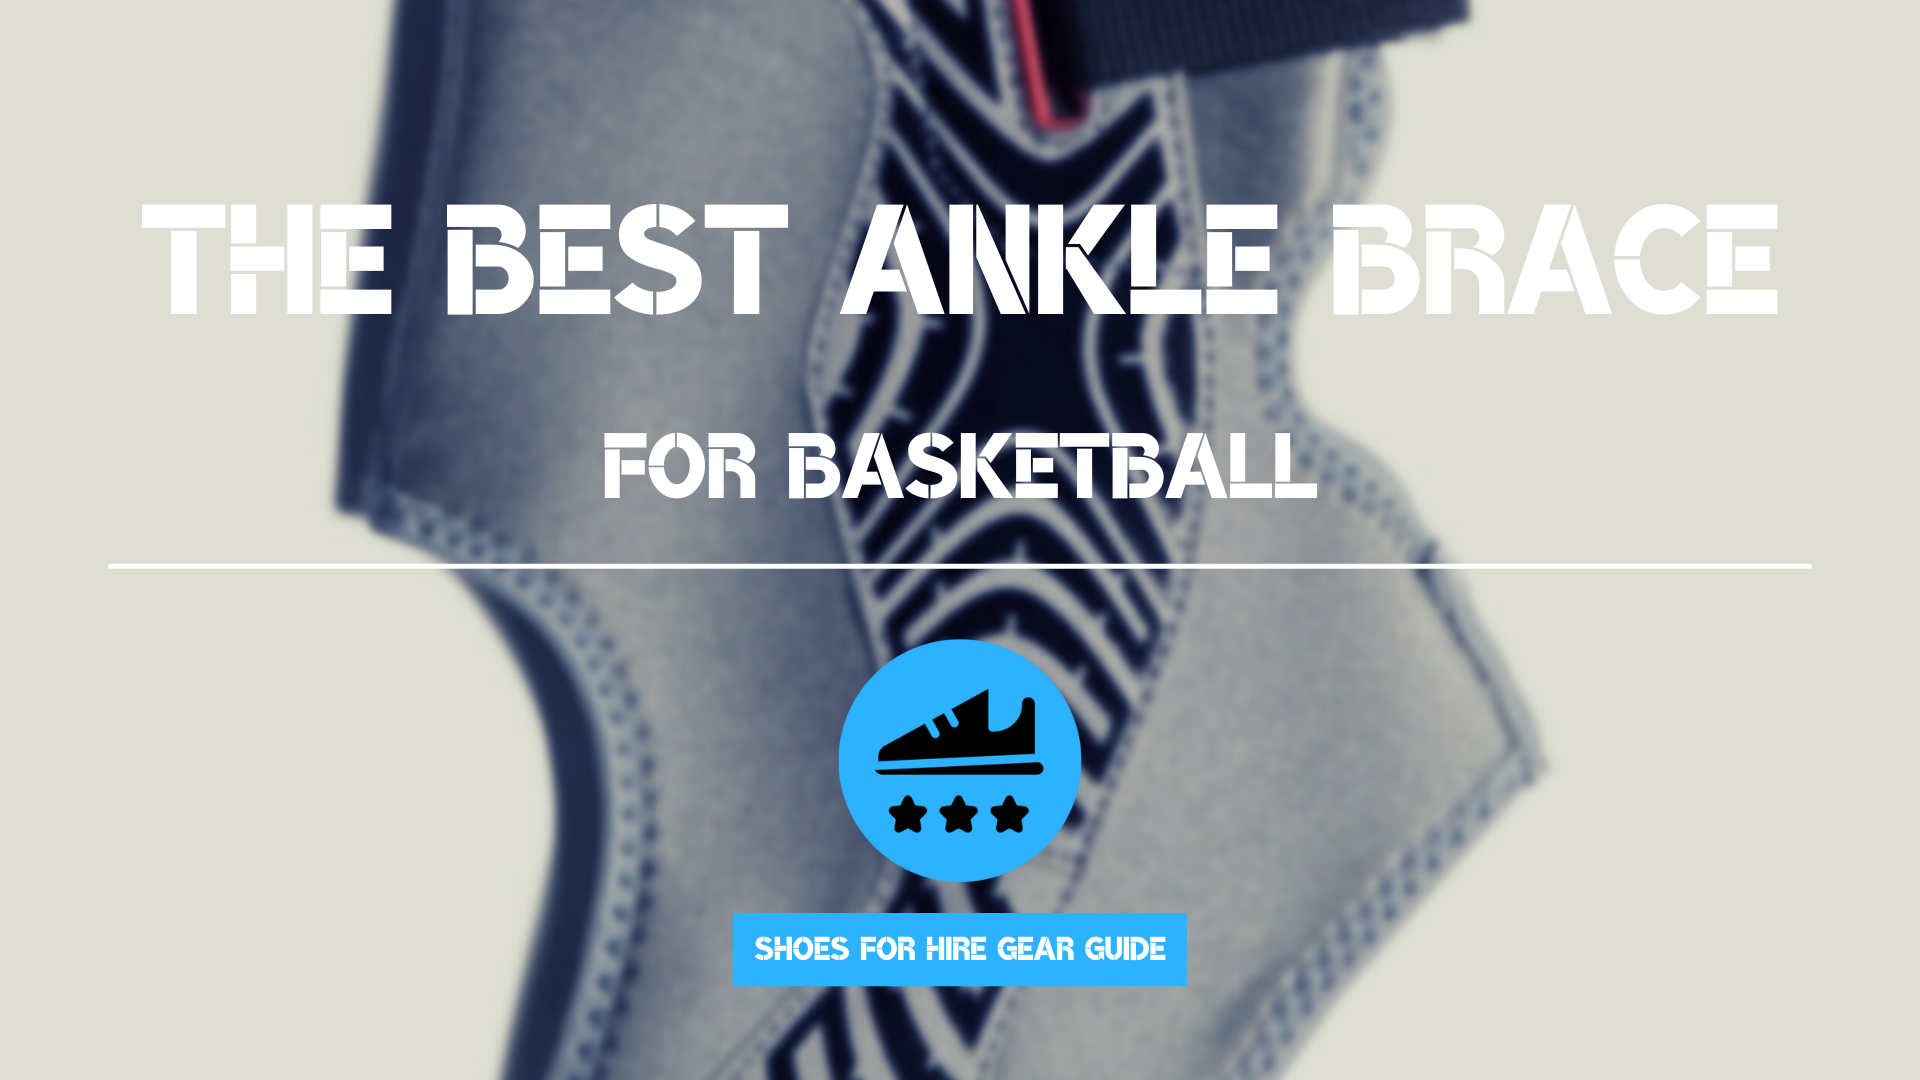 What's the Best Ankle Brace for Basketball: Intro